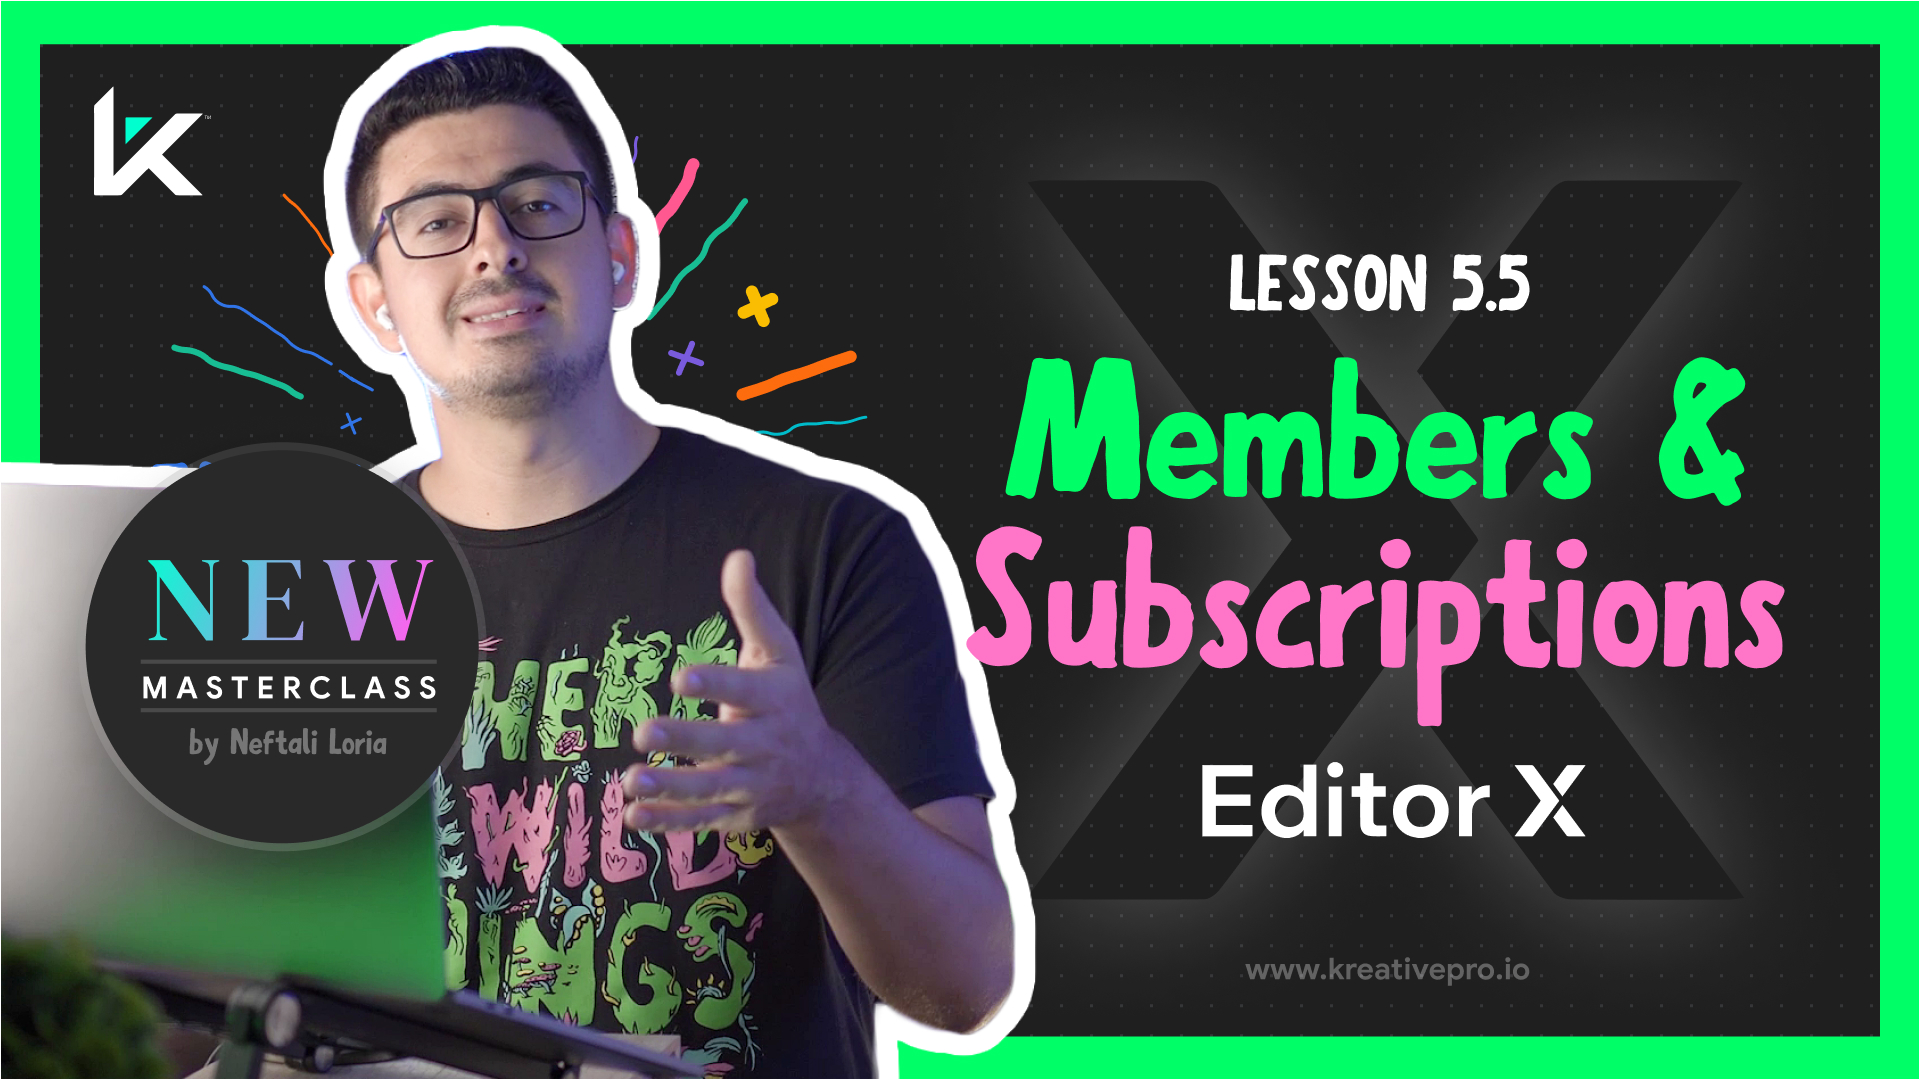 Editor X 5.5 - Memberships and Subscriptions